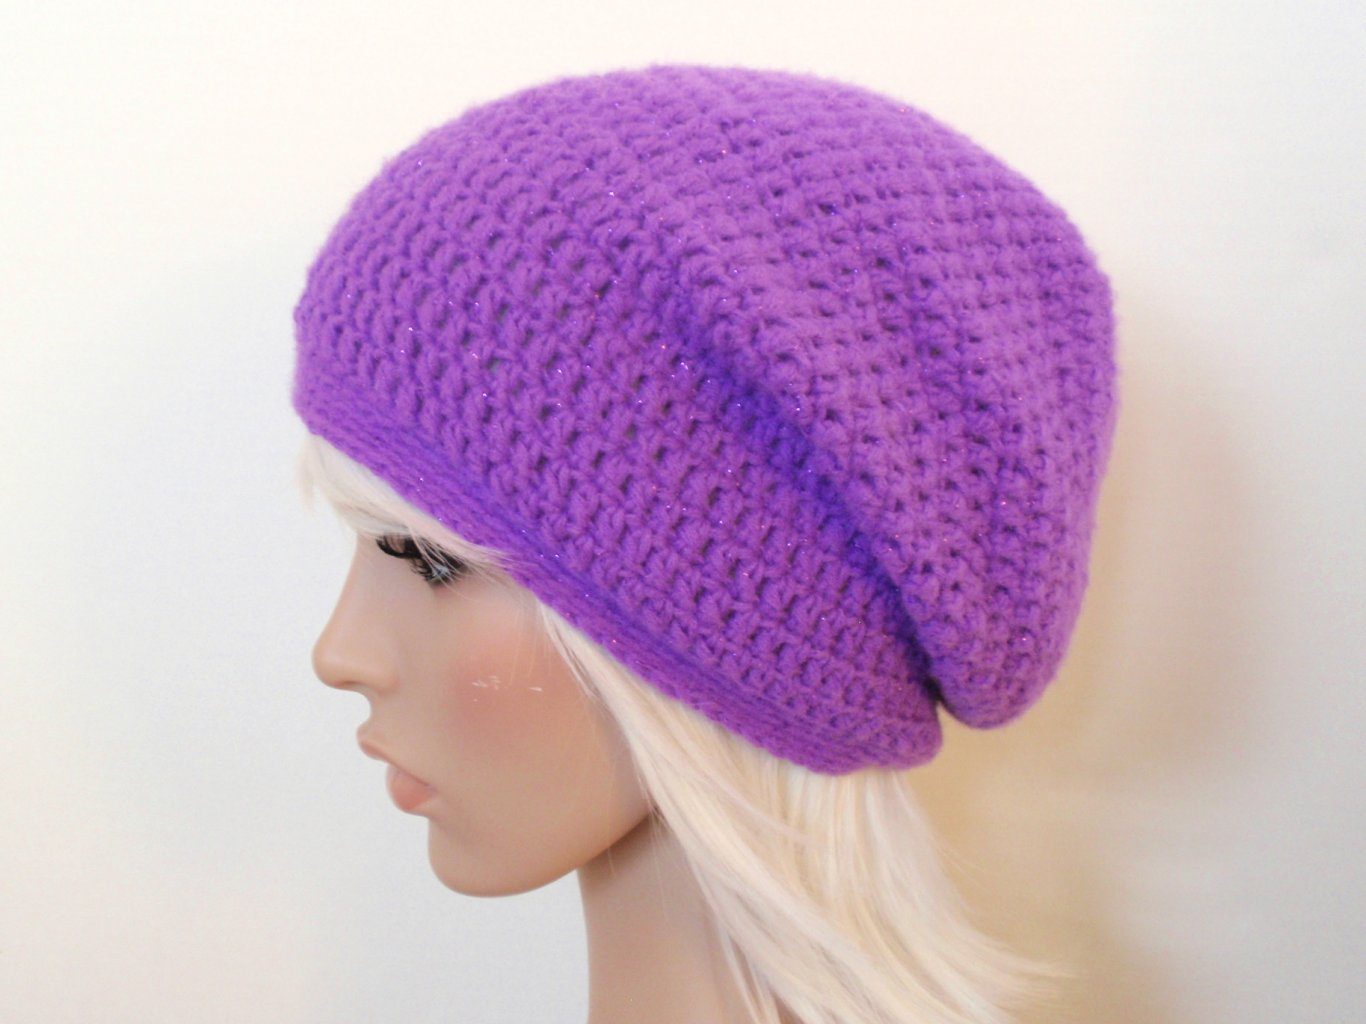 Free Patterns Crochet Beanies : Beanie Crochet Patterns - My Patterns